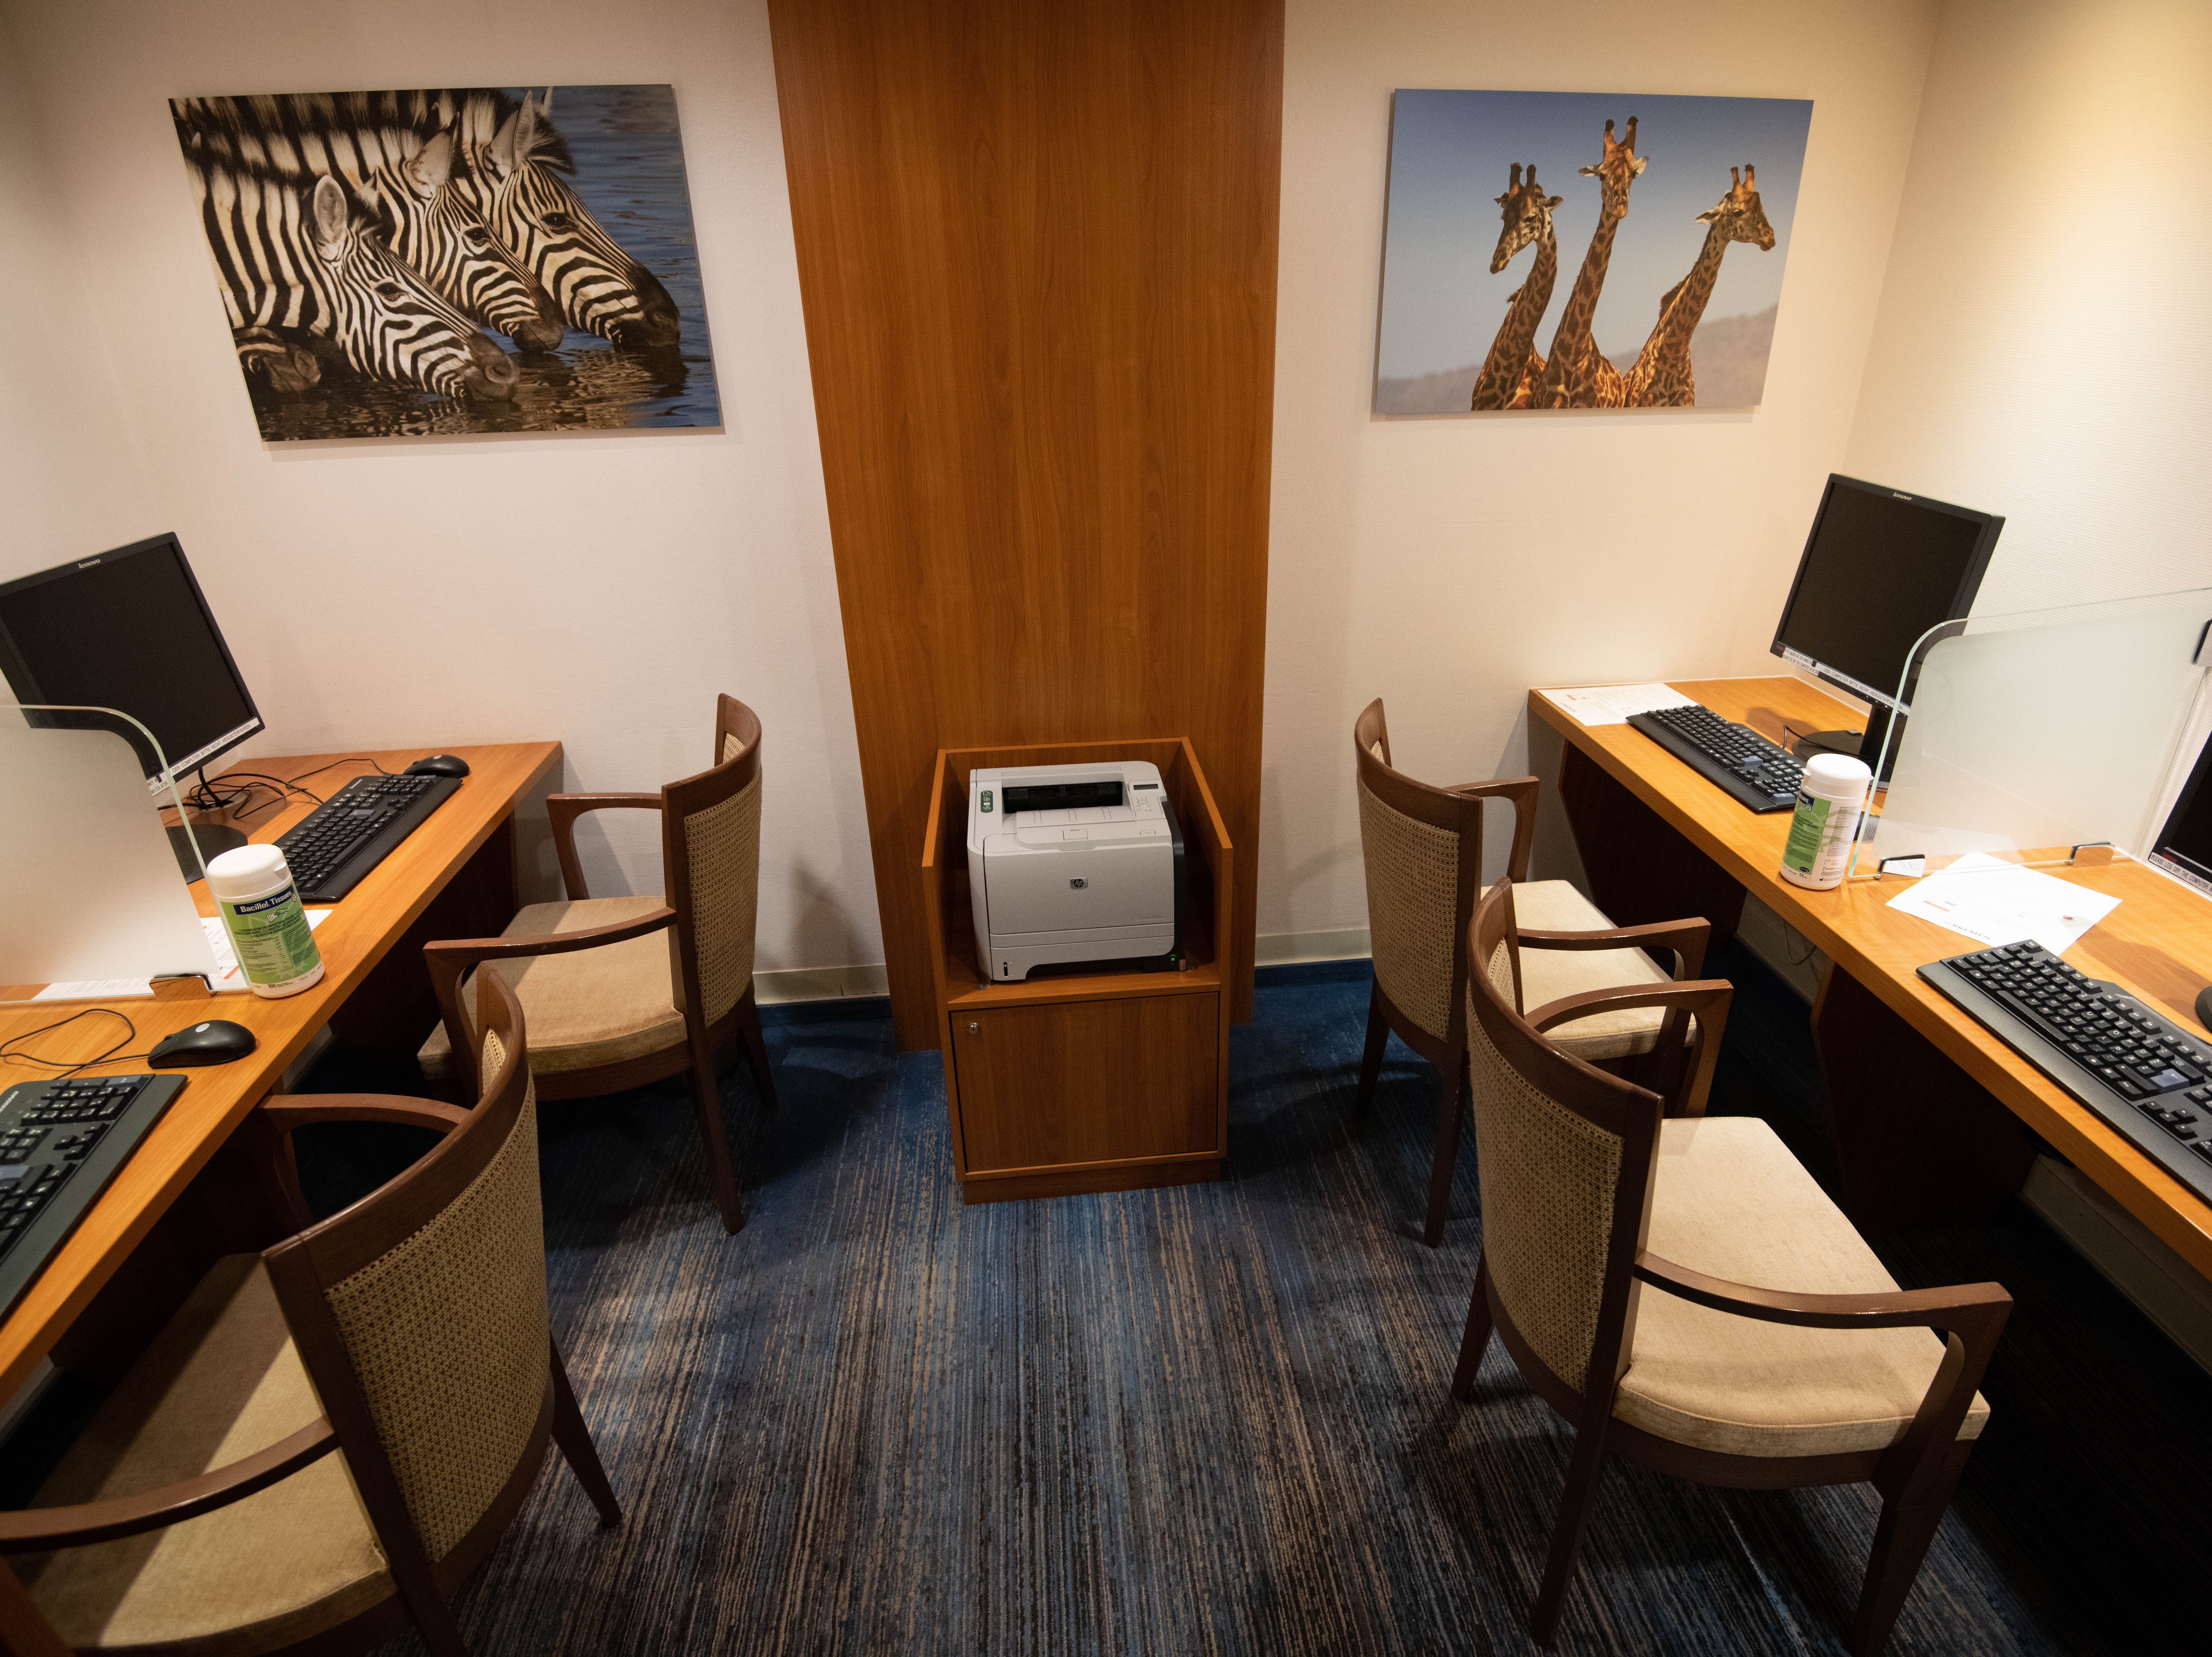 An internet center with four computers is located on Deck 4.